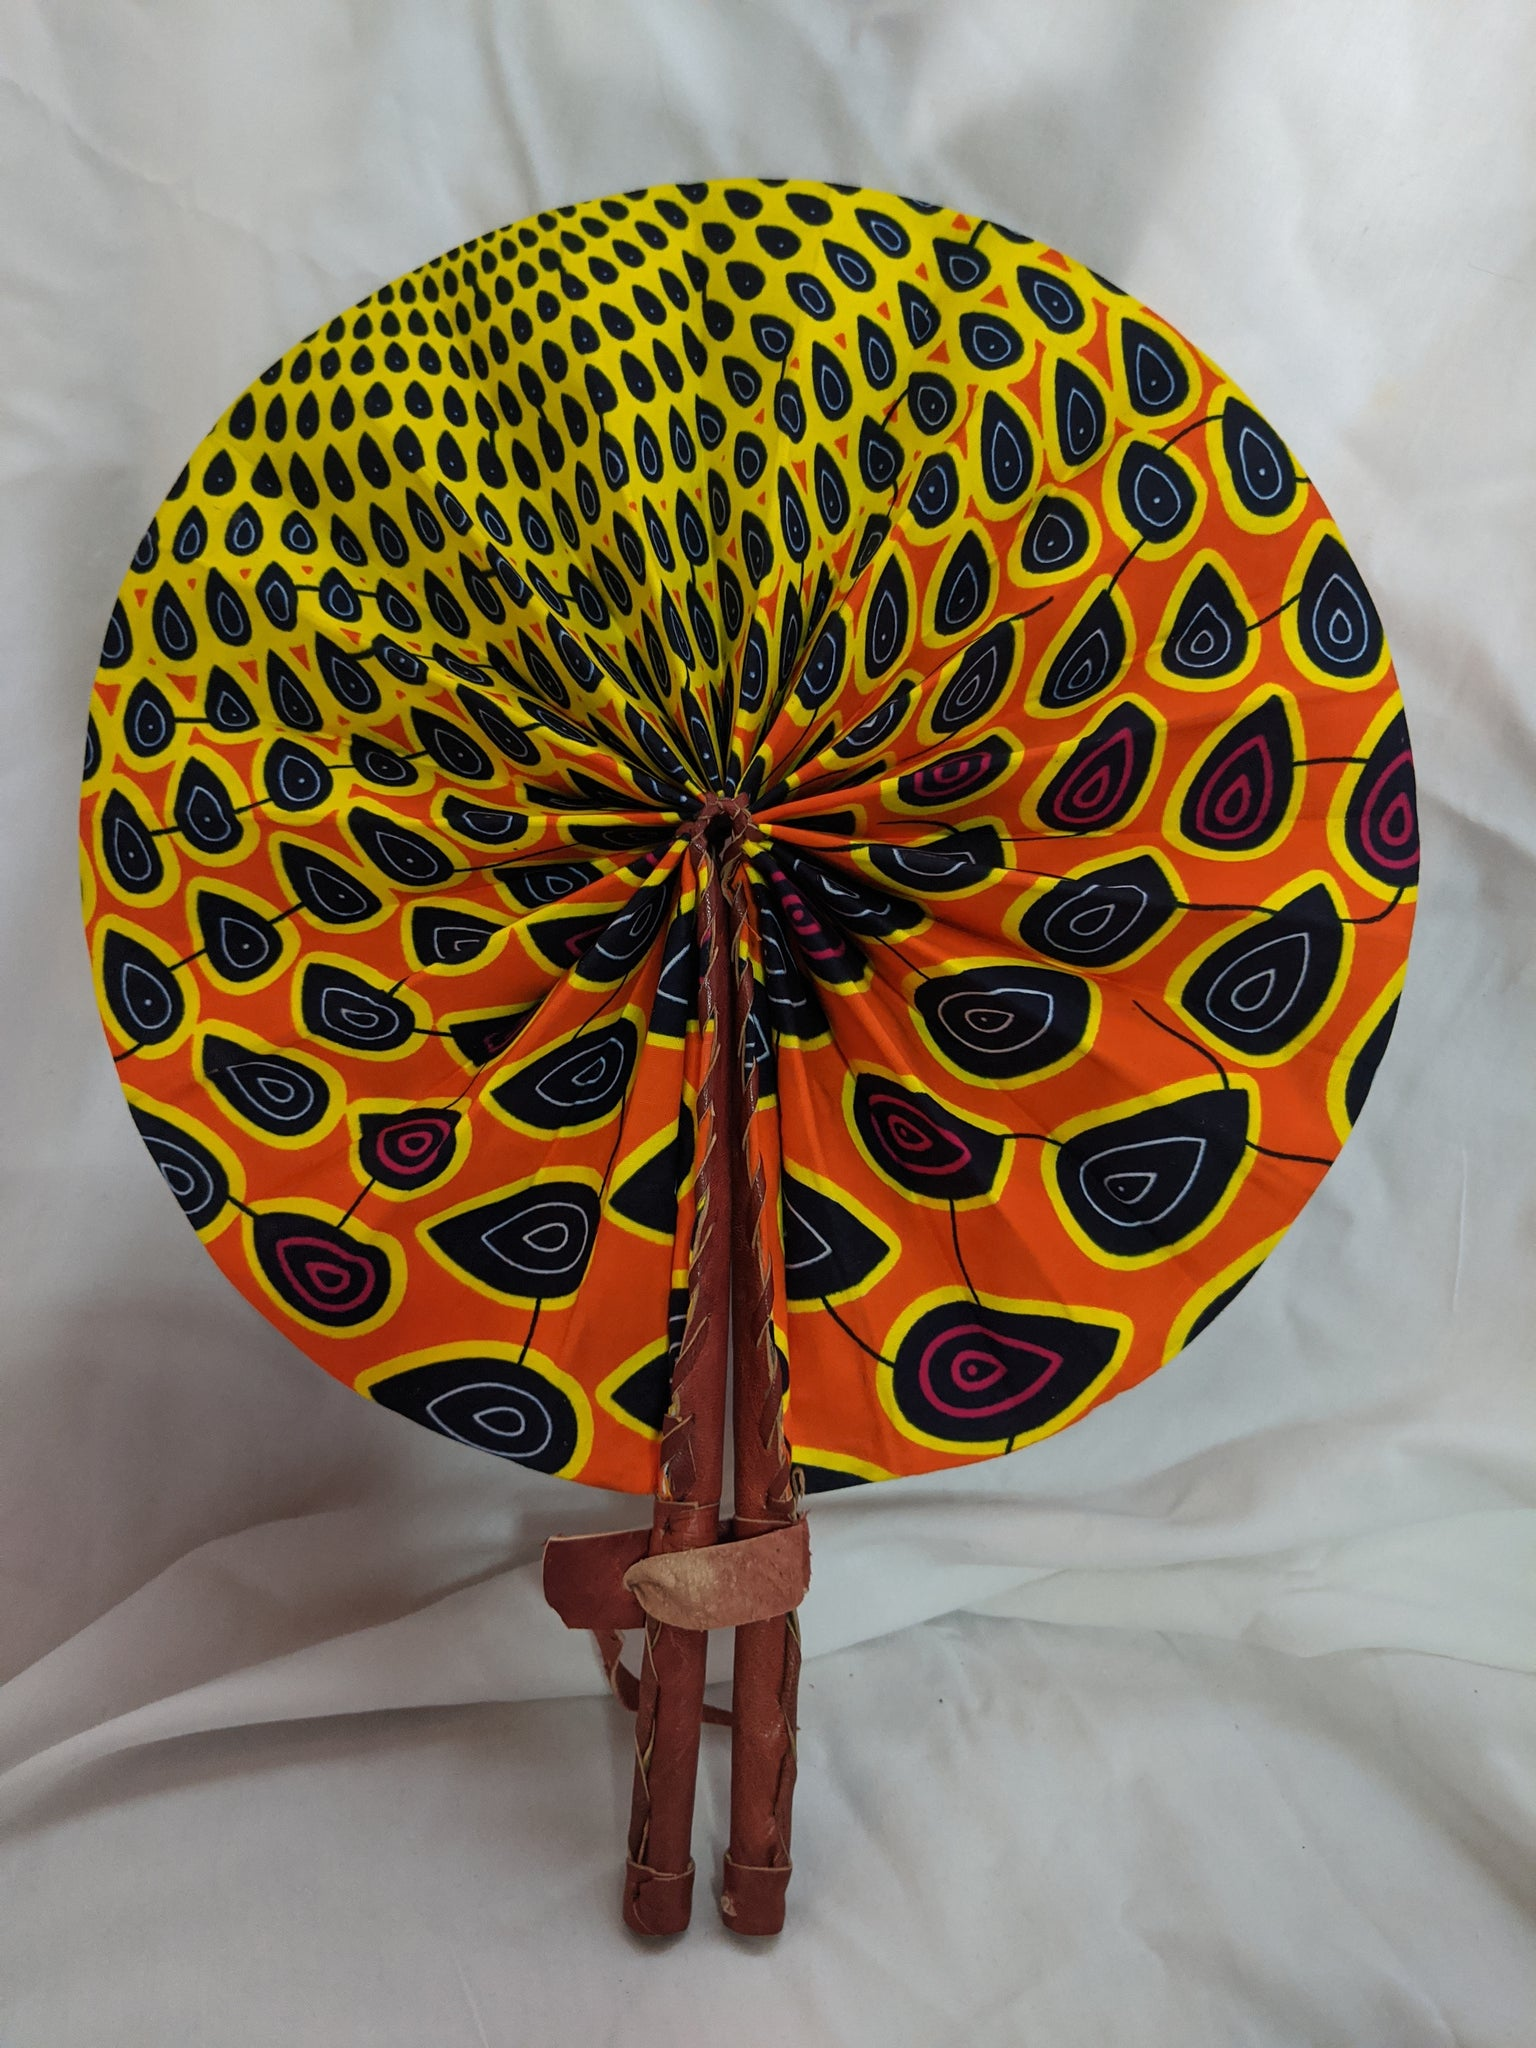 Colorful Ankara Fabric foldable hand fan with leather handles 3 peacock tear drops yellow gold orange red black